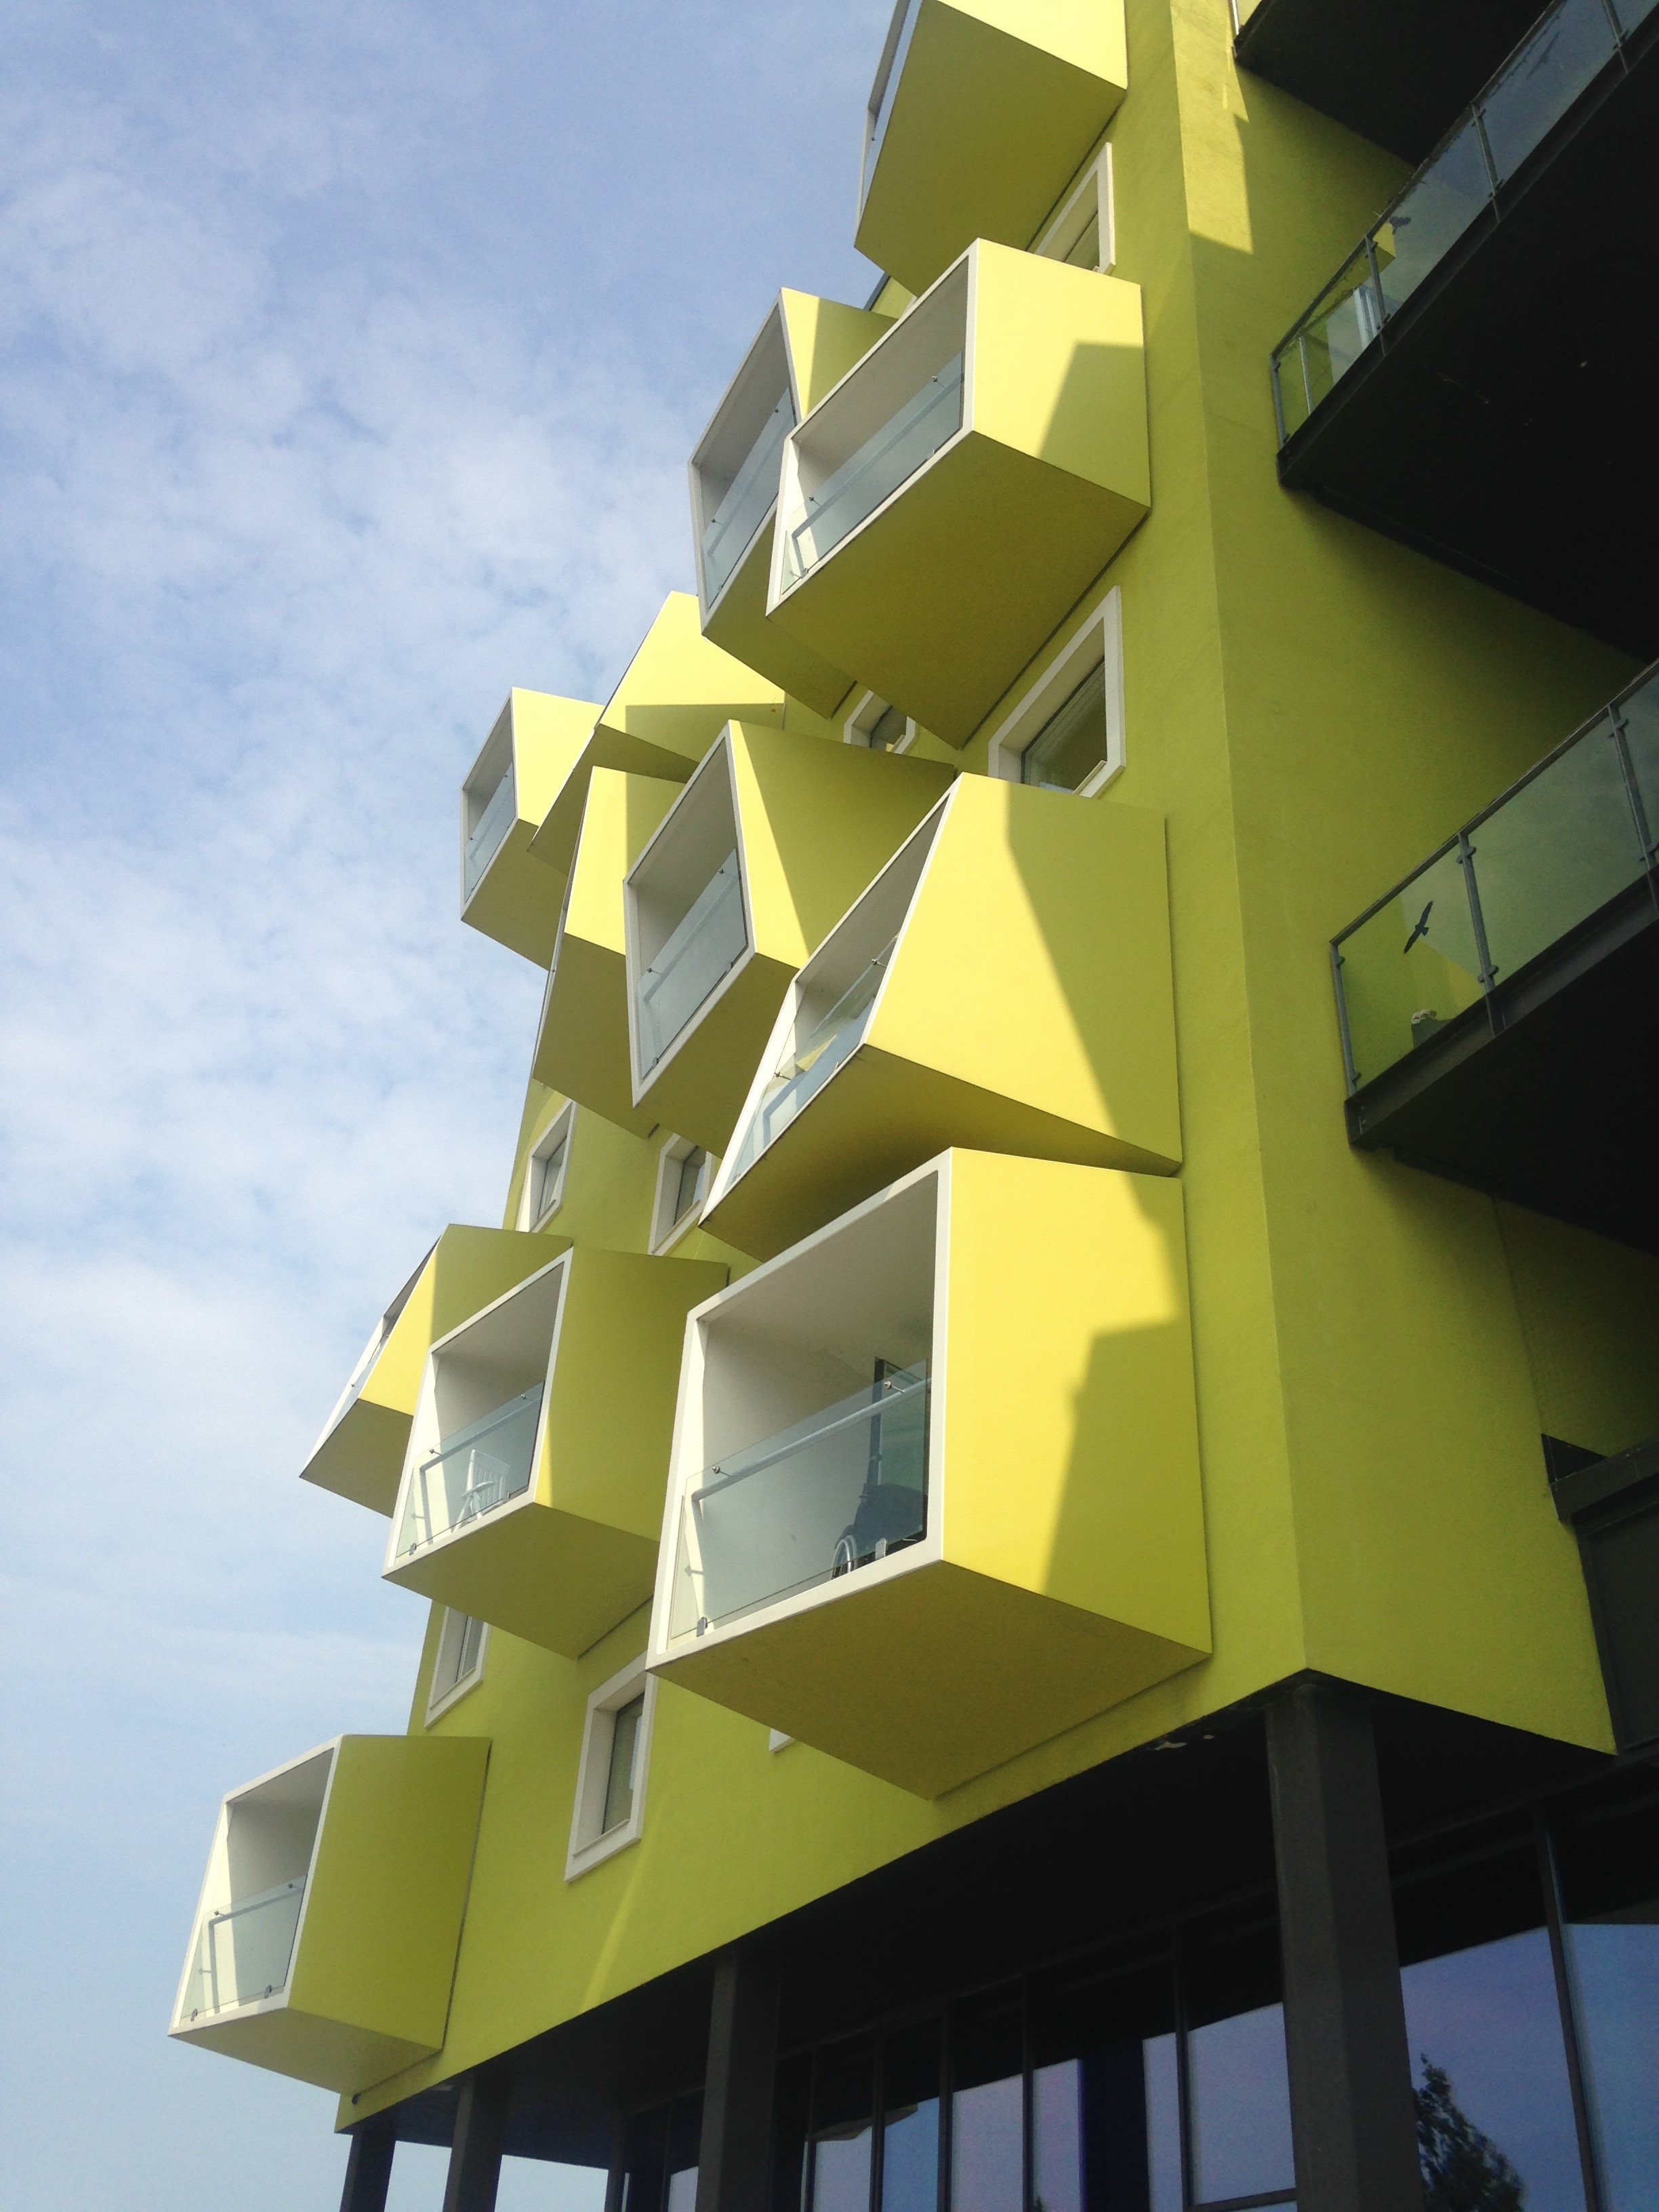 Busy but sheltered cantilevers on older people's housing